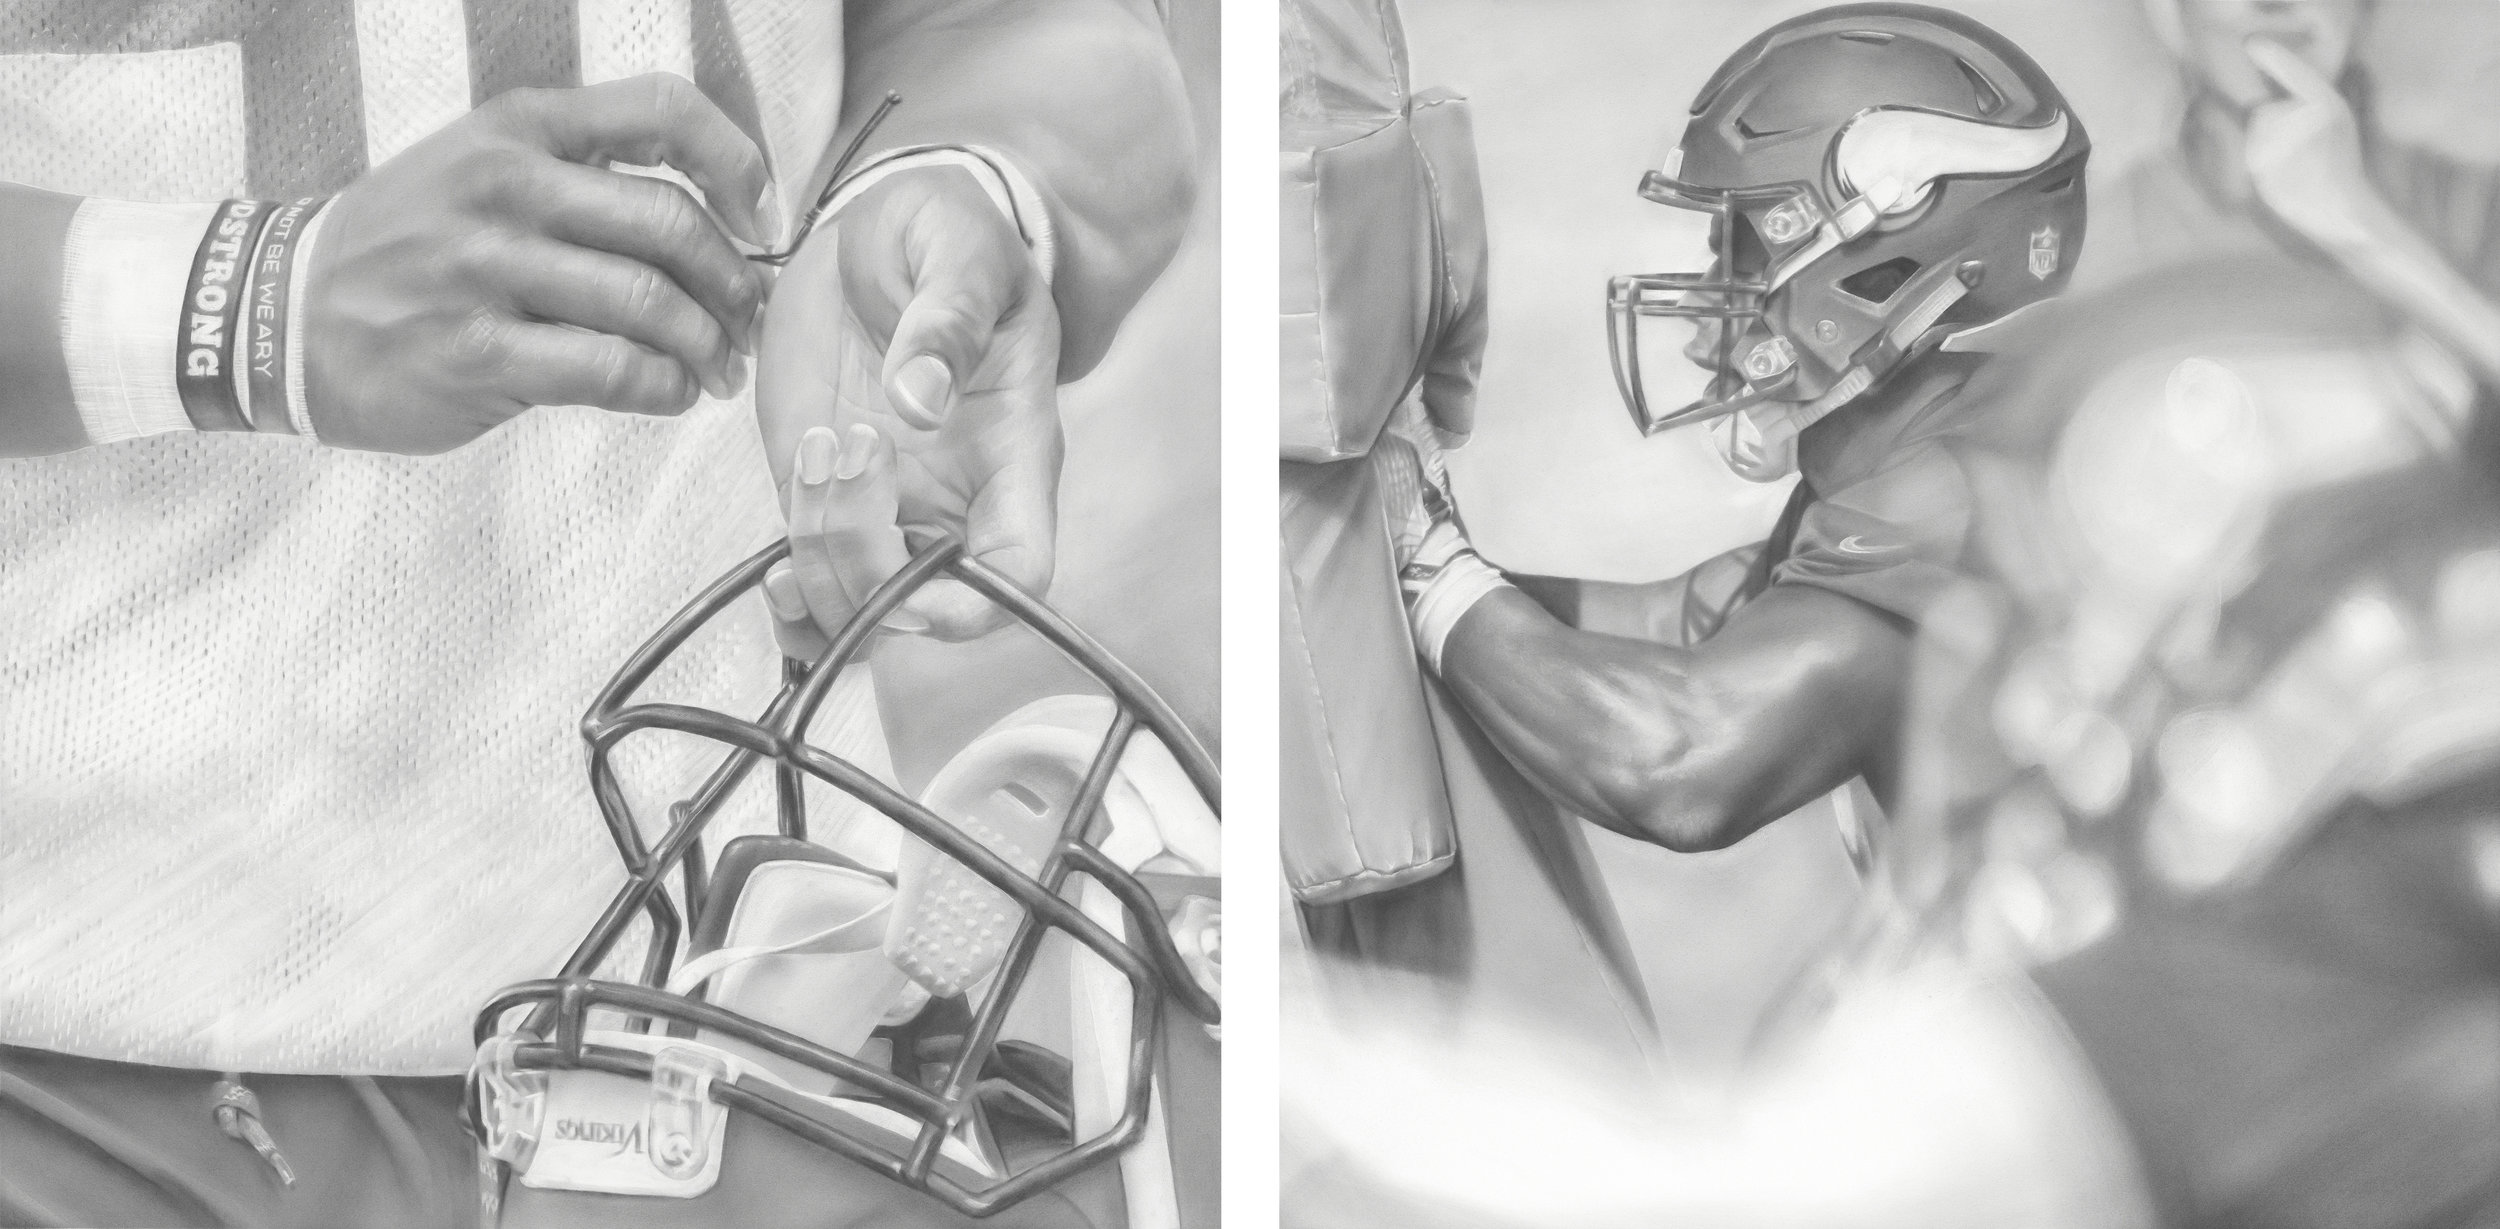 """""""Viking Strong"""" and """"Sled (Push It)"""", Graphite on paper, 30 x 30 inches each. Commission for the Minnesota Vikings TCO Performance Center. 2018."""